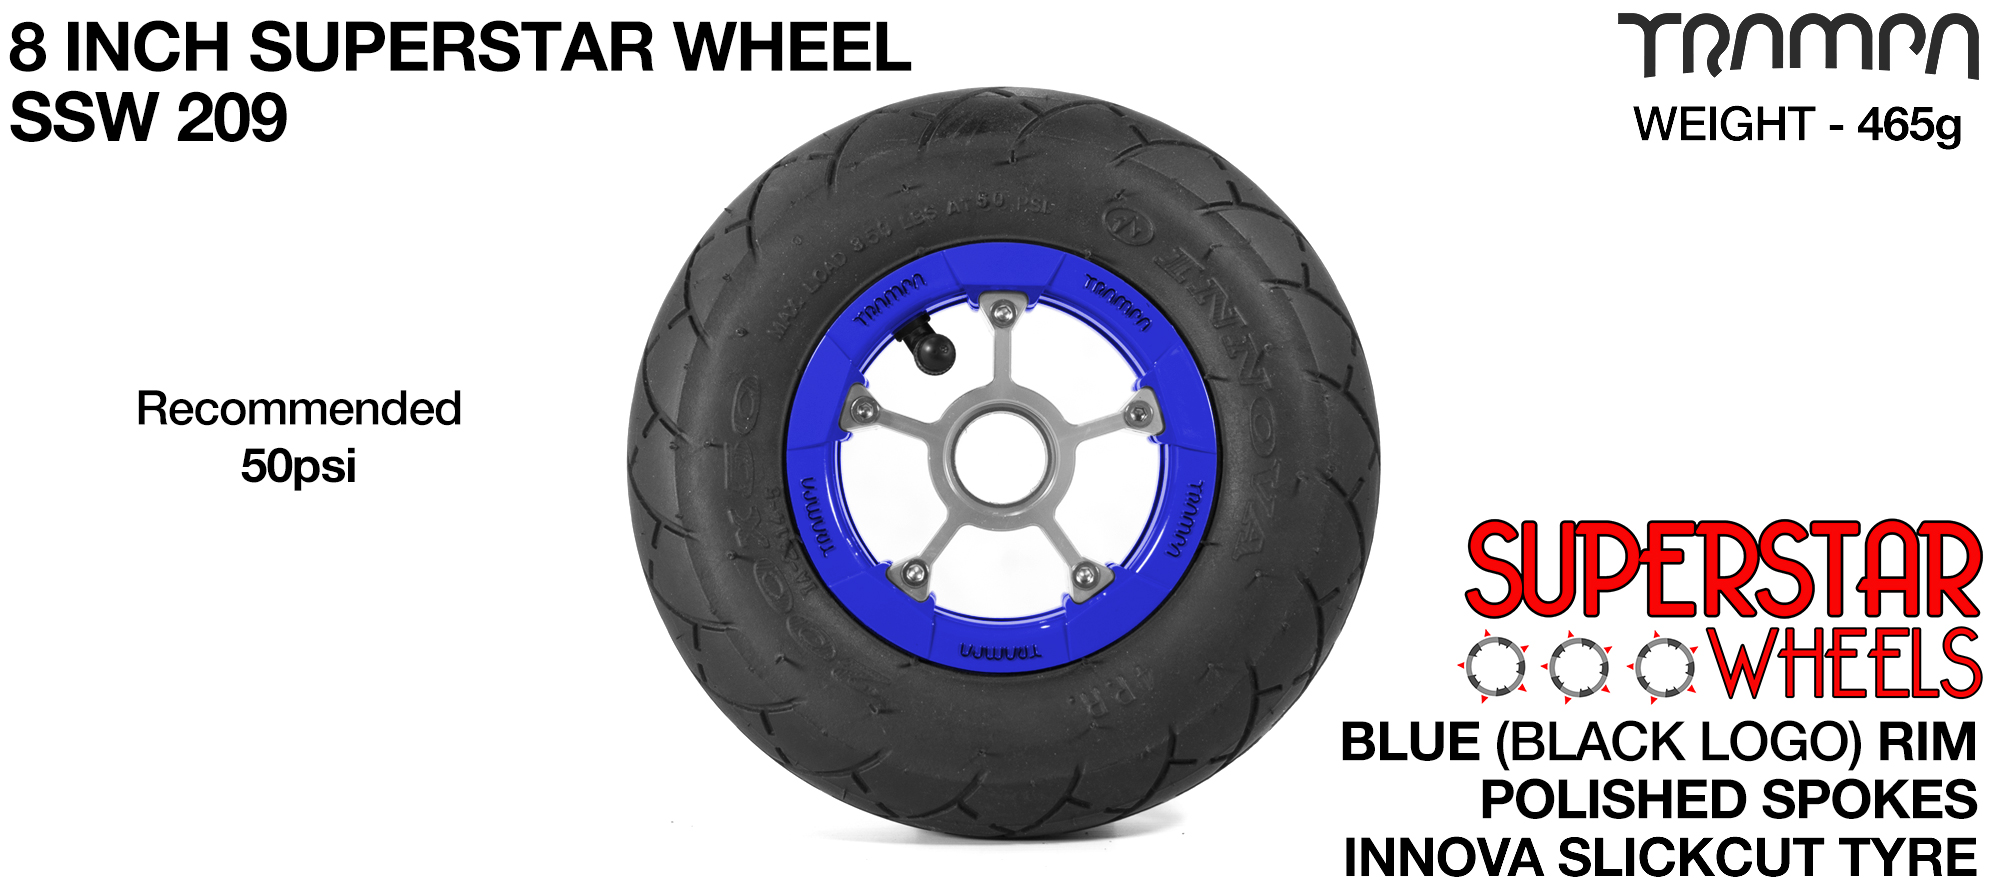 Superstar 8 inch wheels - Blue Gloss Black Logo Superstar Rim with Silver Anodised spokes & Black Slick Cut 8 inch Tyre